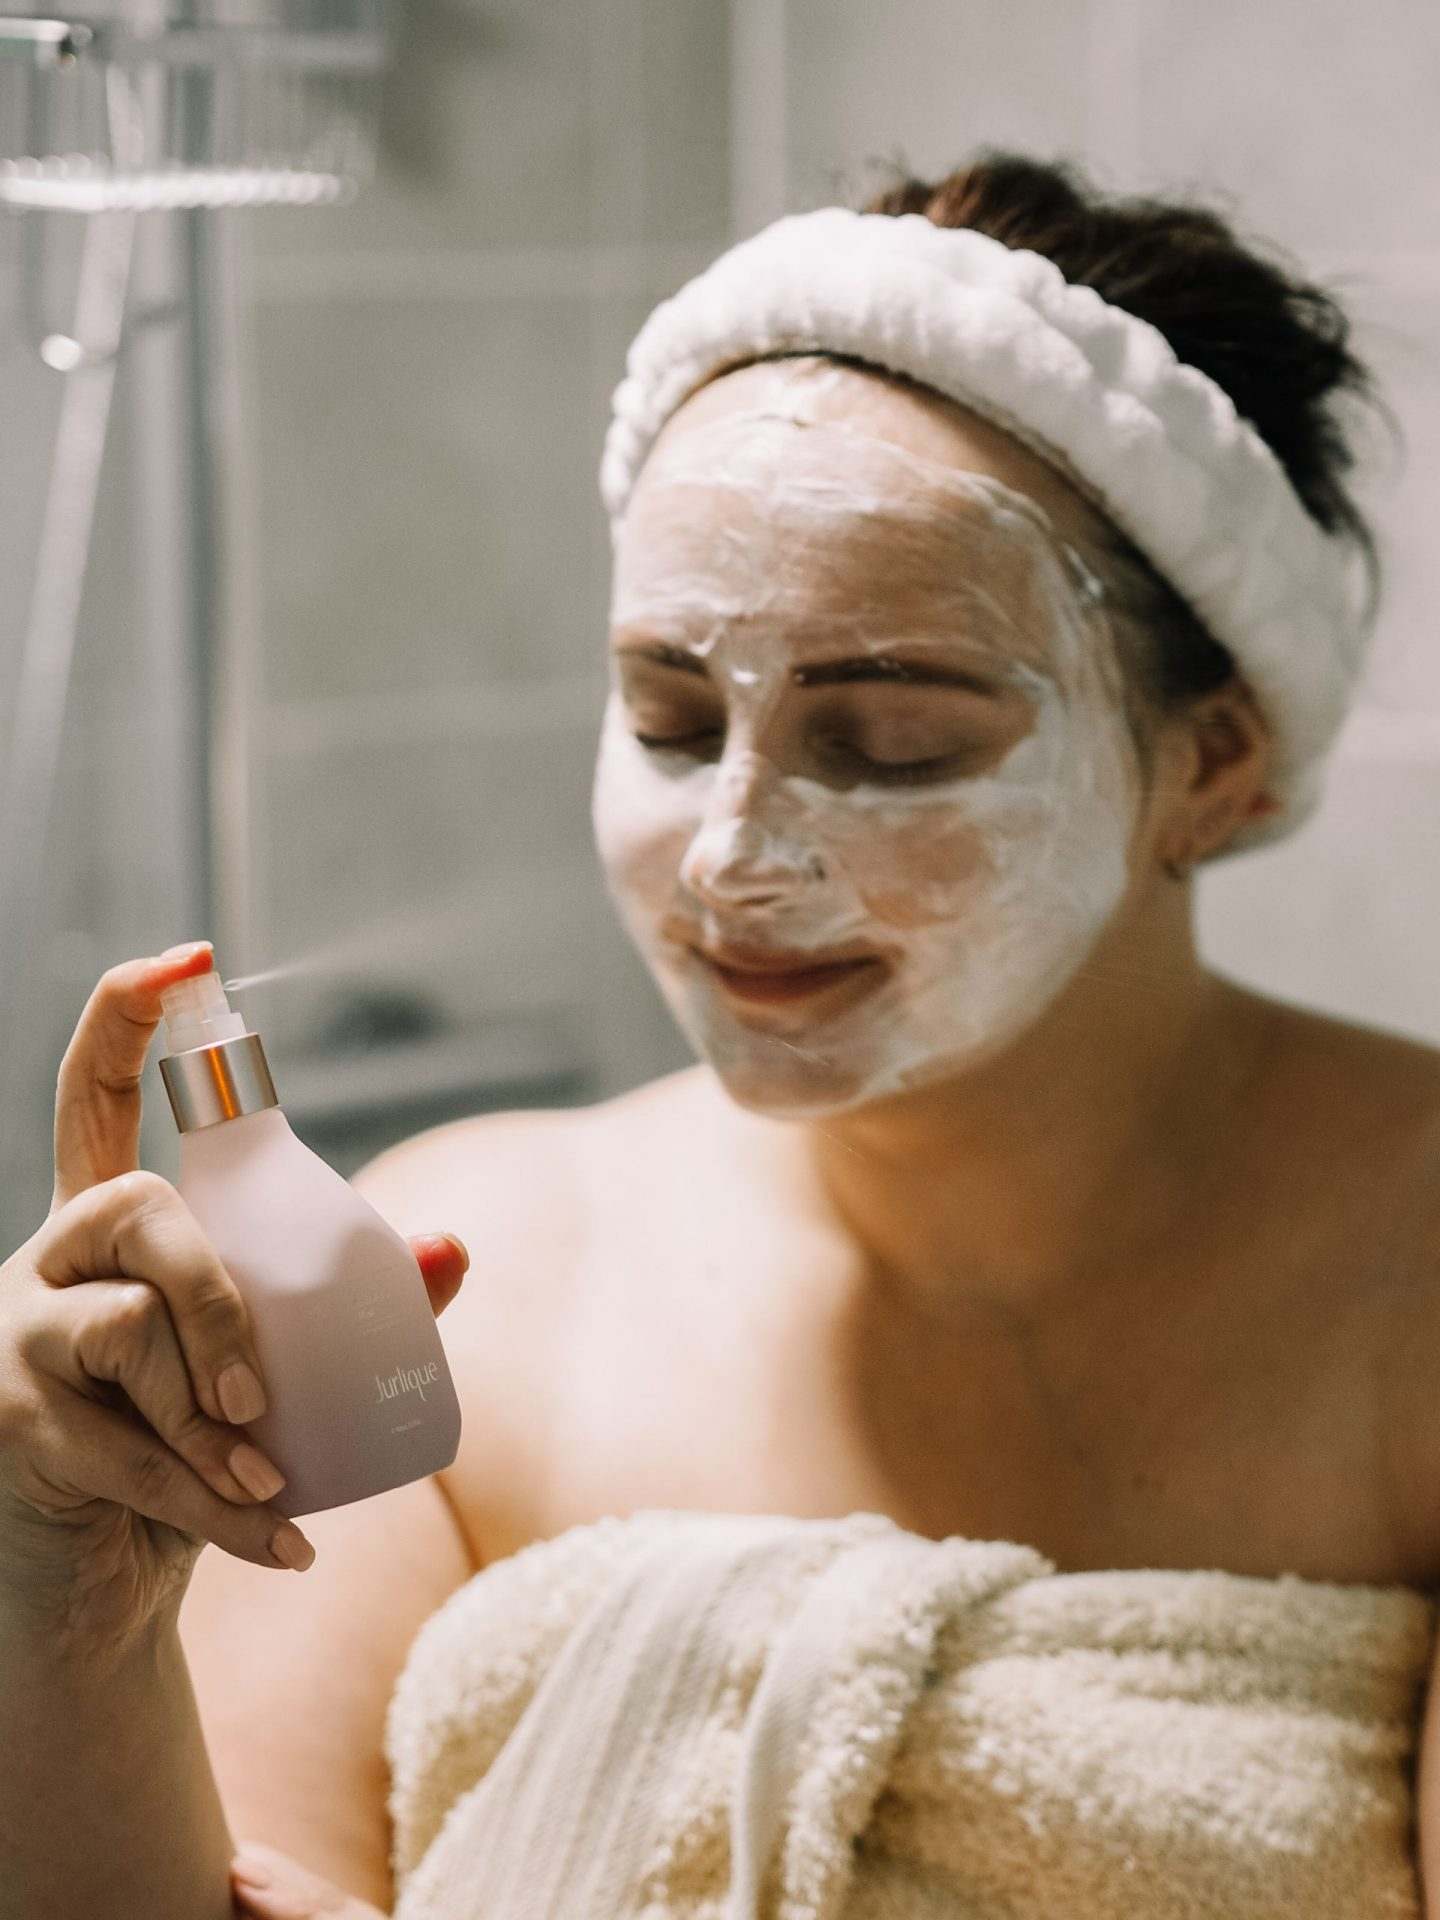 How To Look After Stressed Skin & Pamper Your Complexion At Home